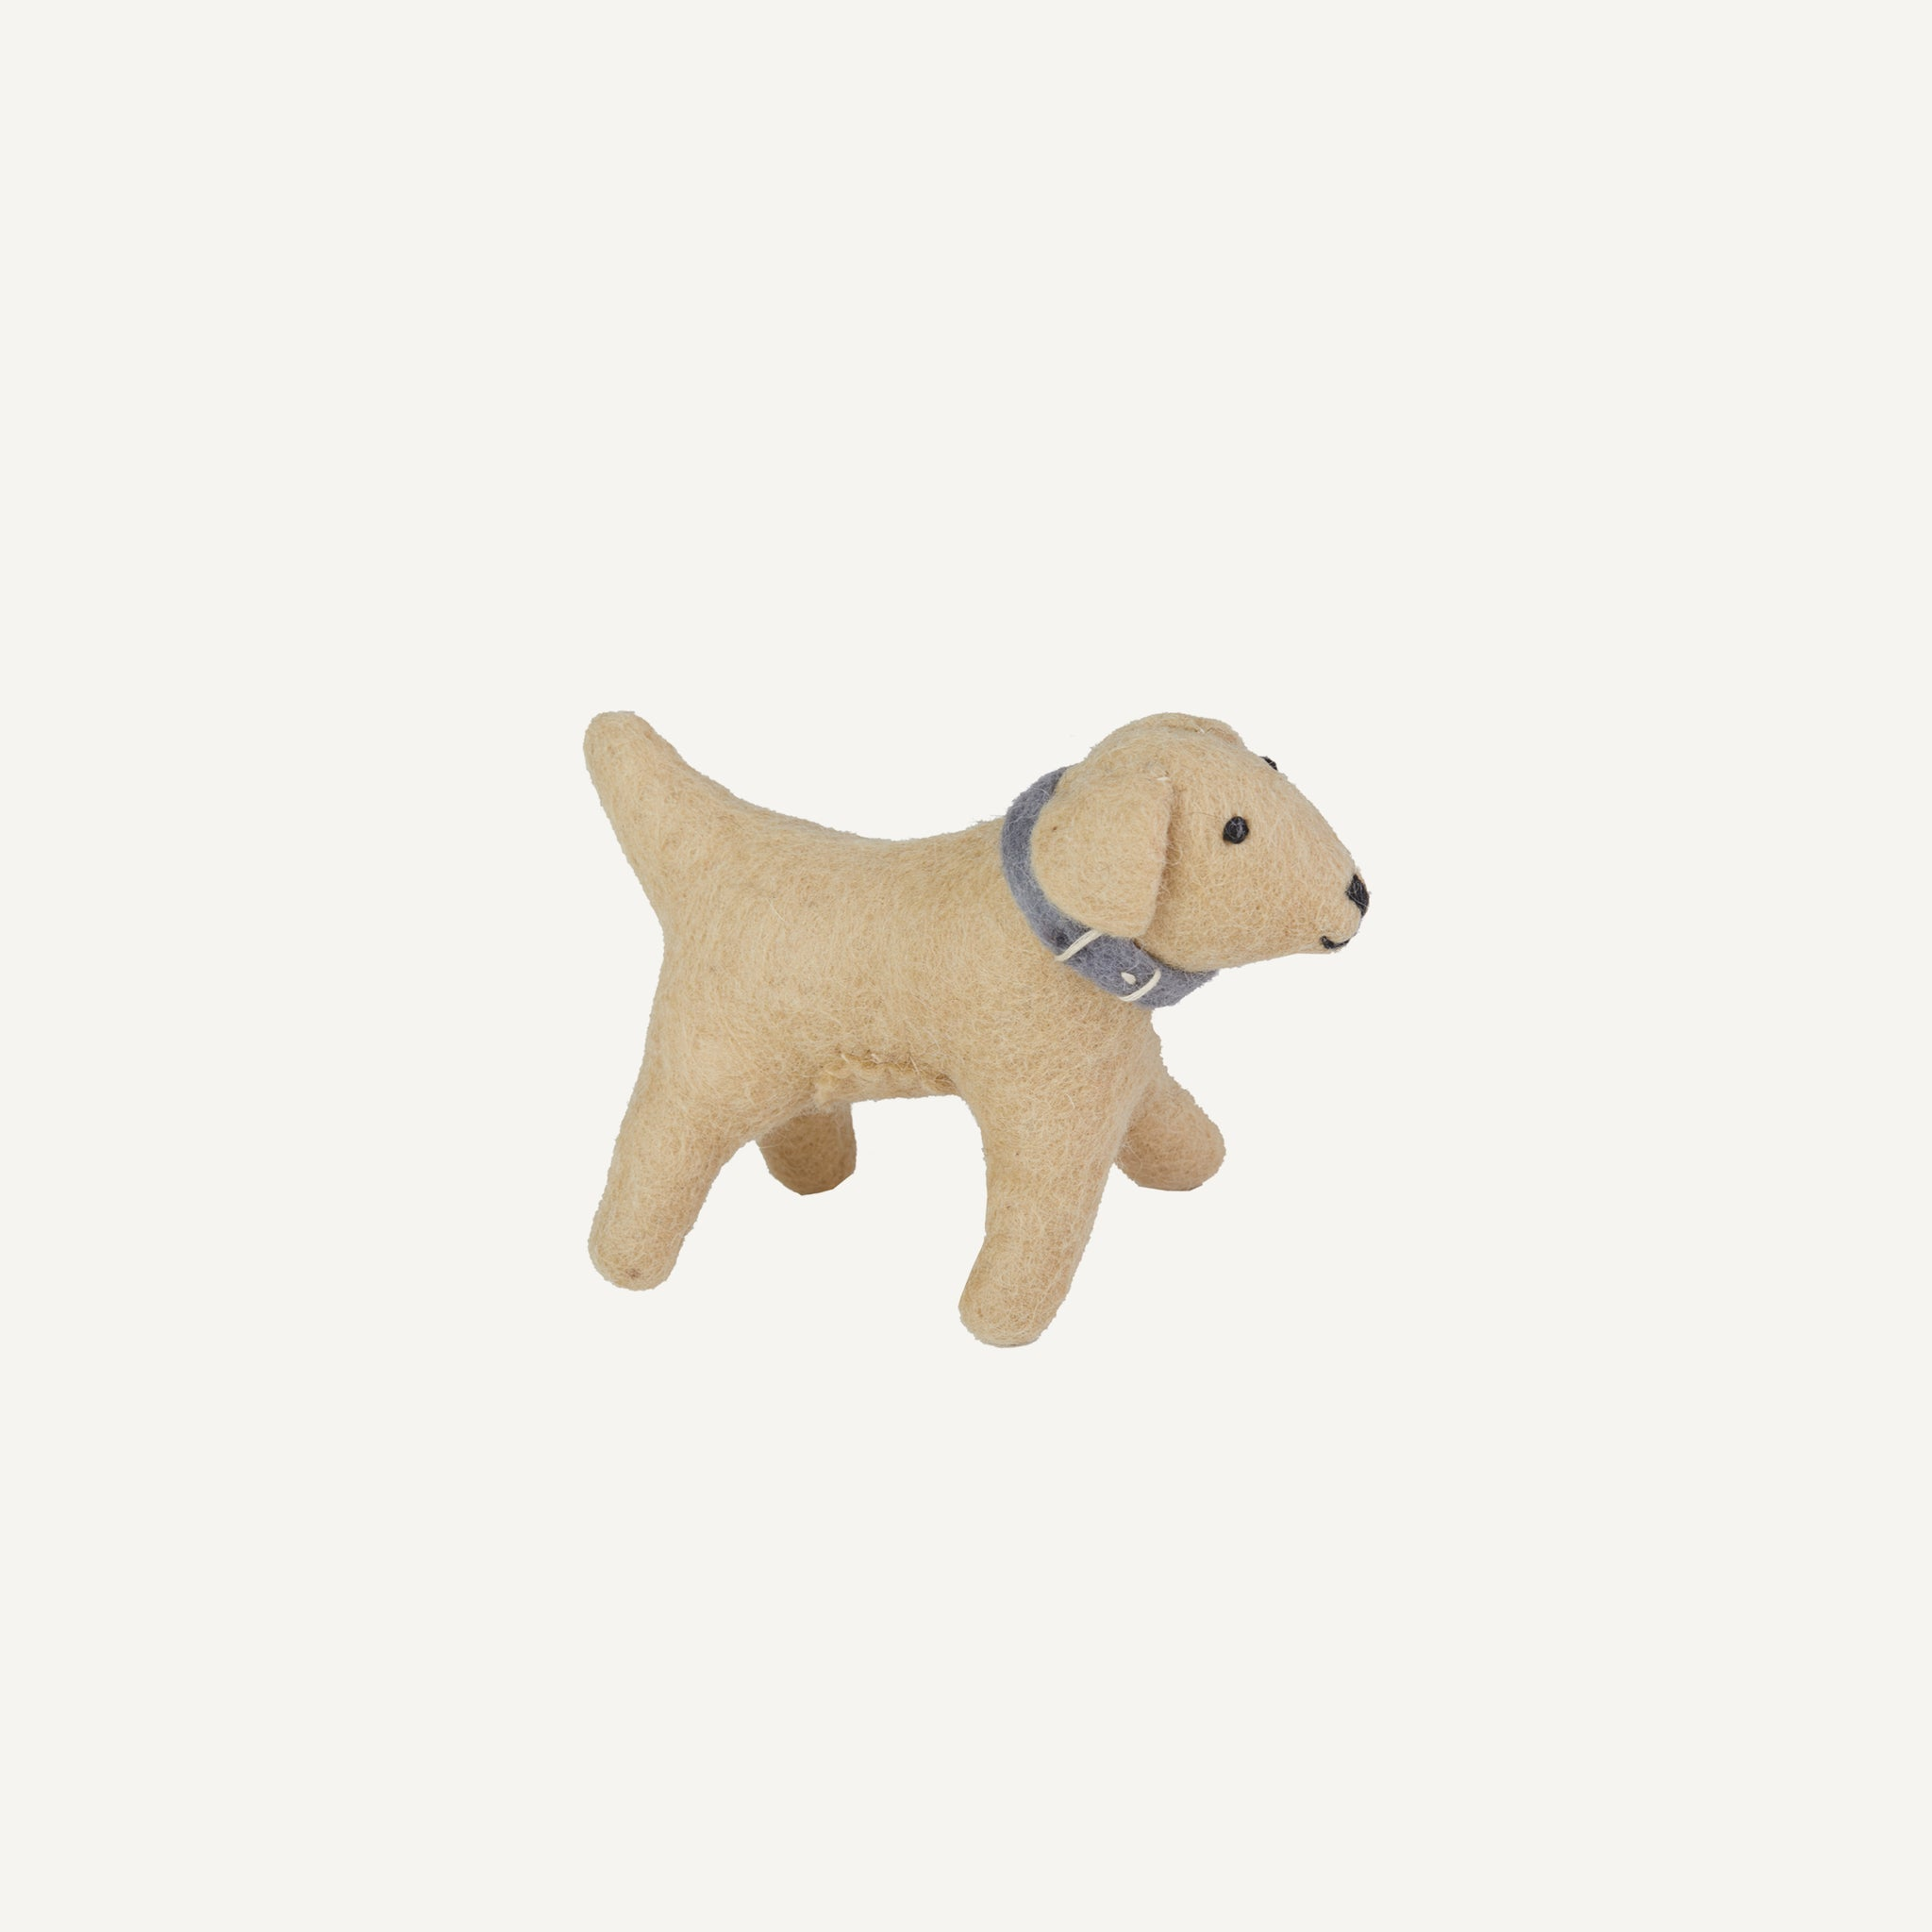 HAND FELTED GOLDEN RETRIEVER